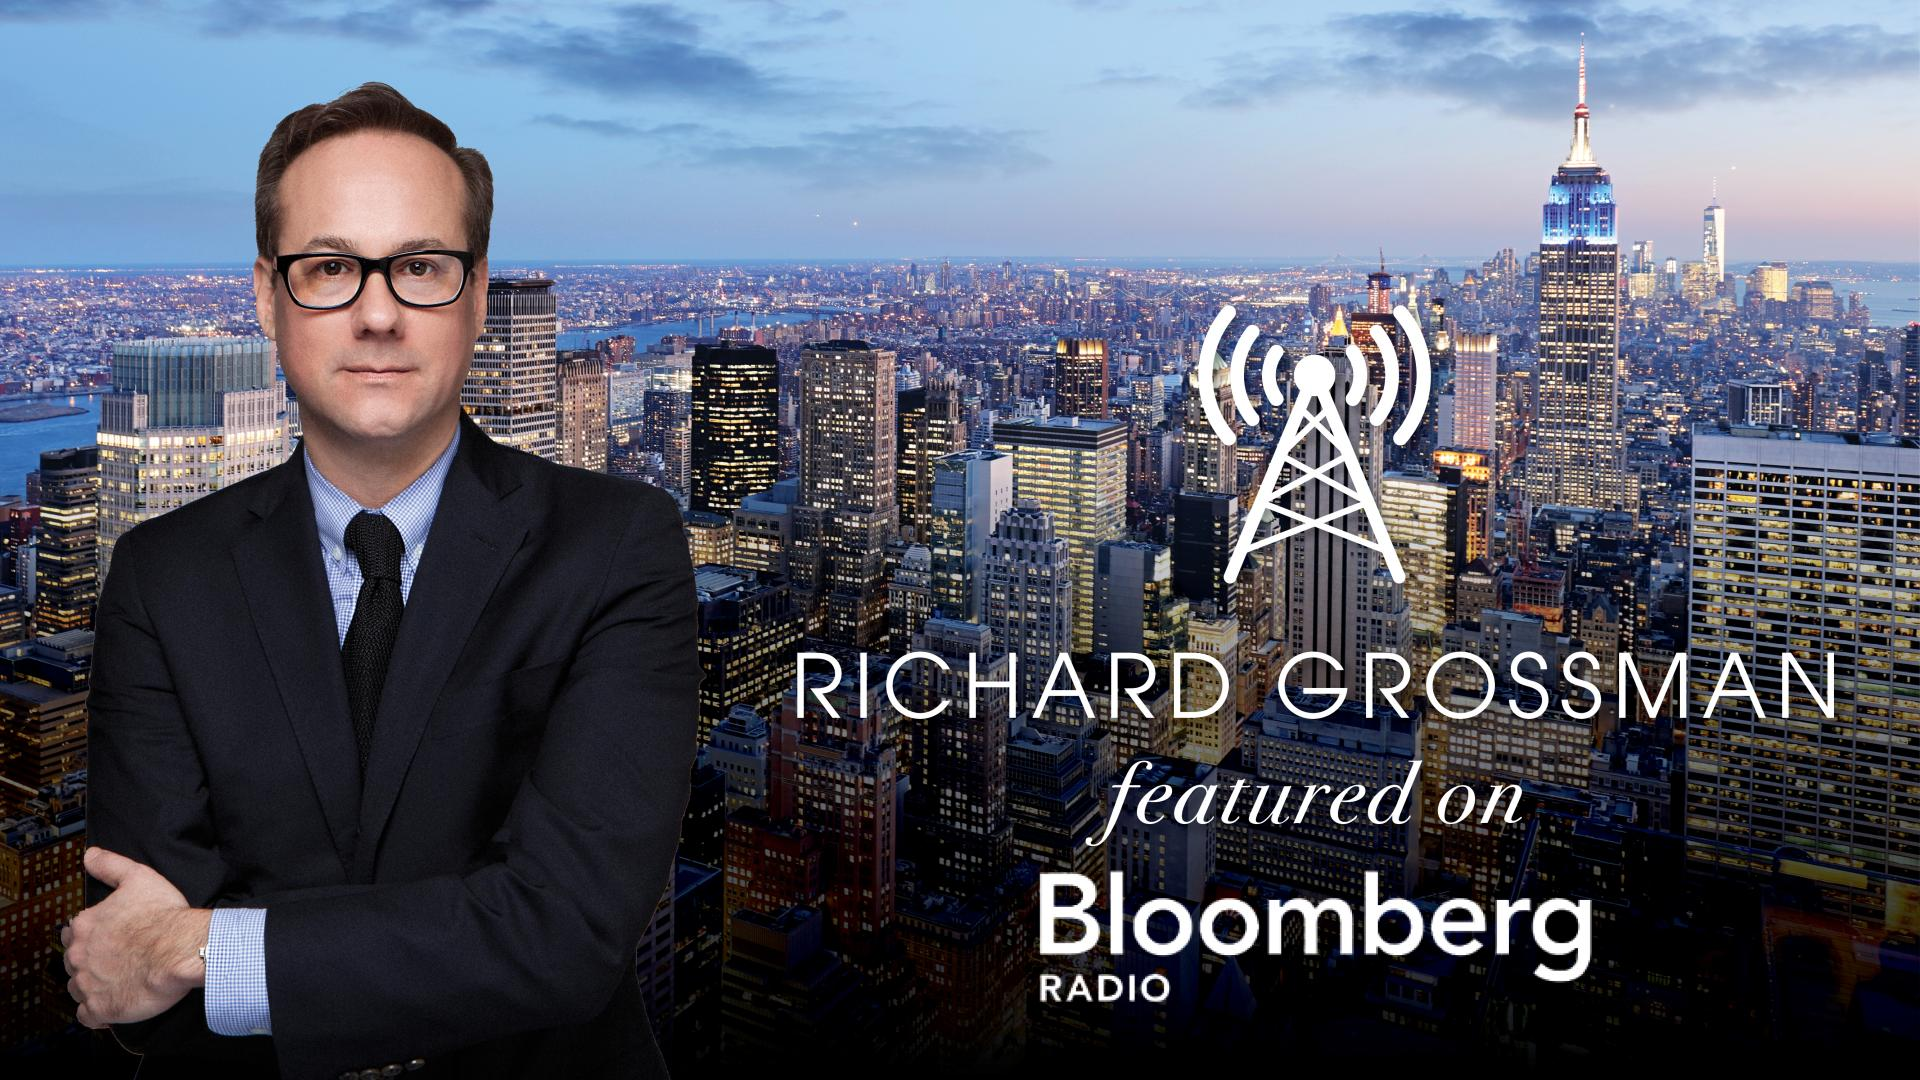 Richard Grossman Featured on Bloomberg Radio 10.5.16